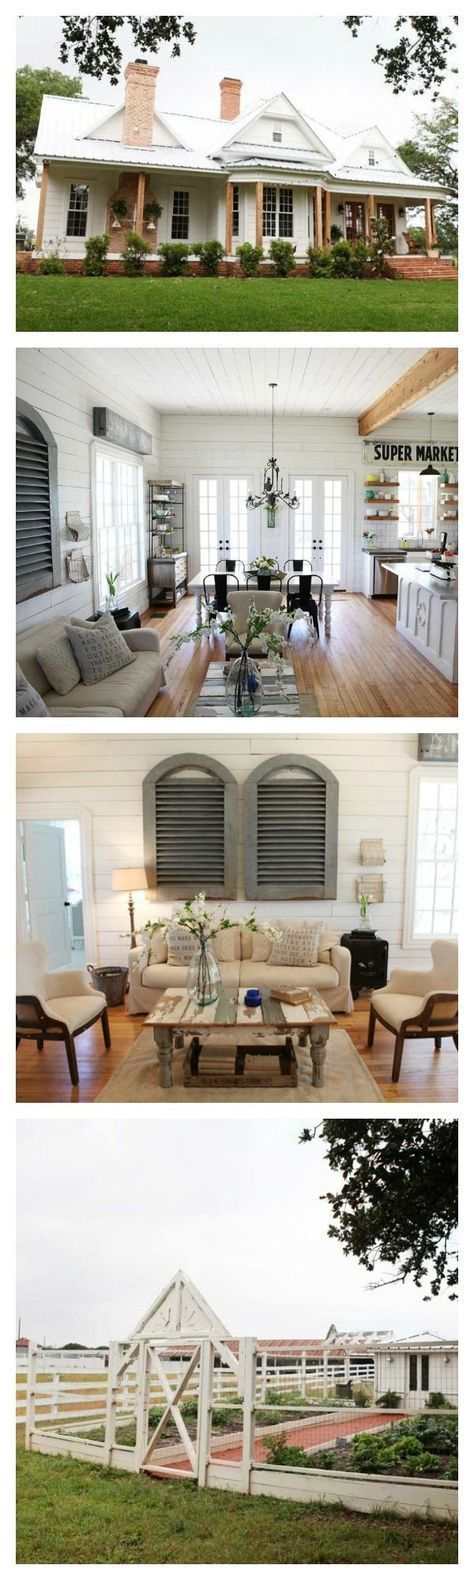 Take a Tour of Chip and Joanna Gaines's Shiplap-Filled Farmhouse